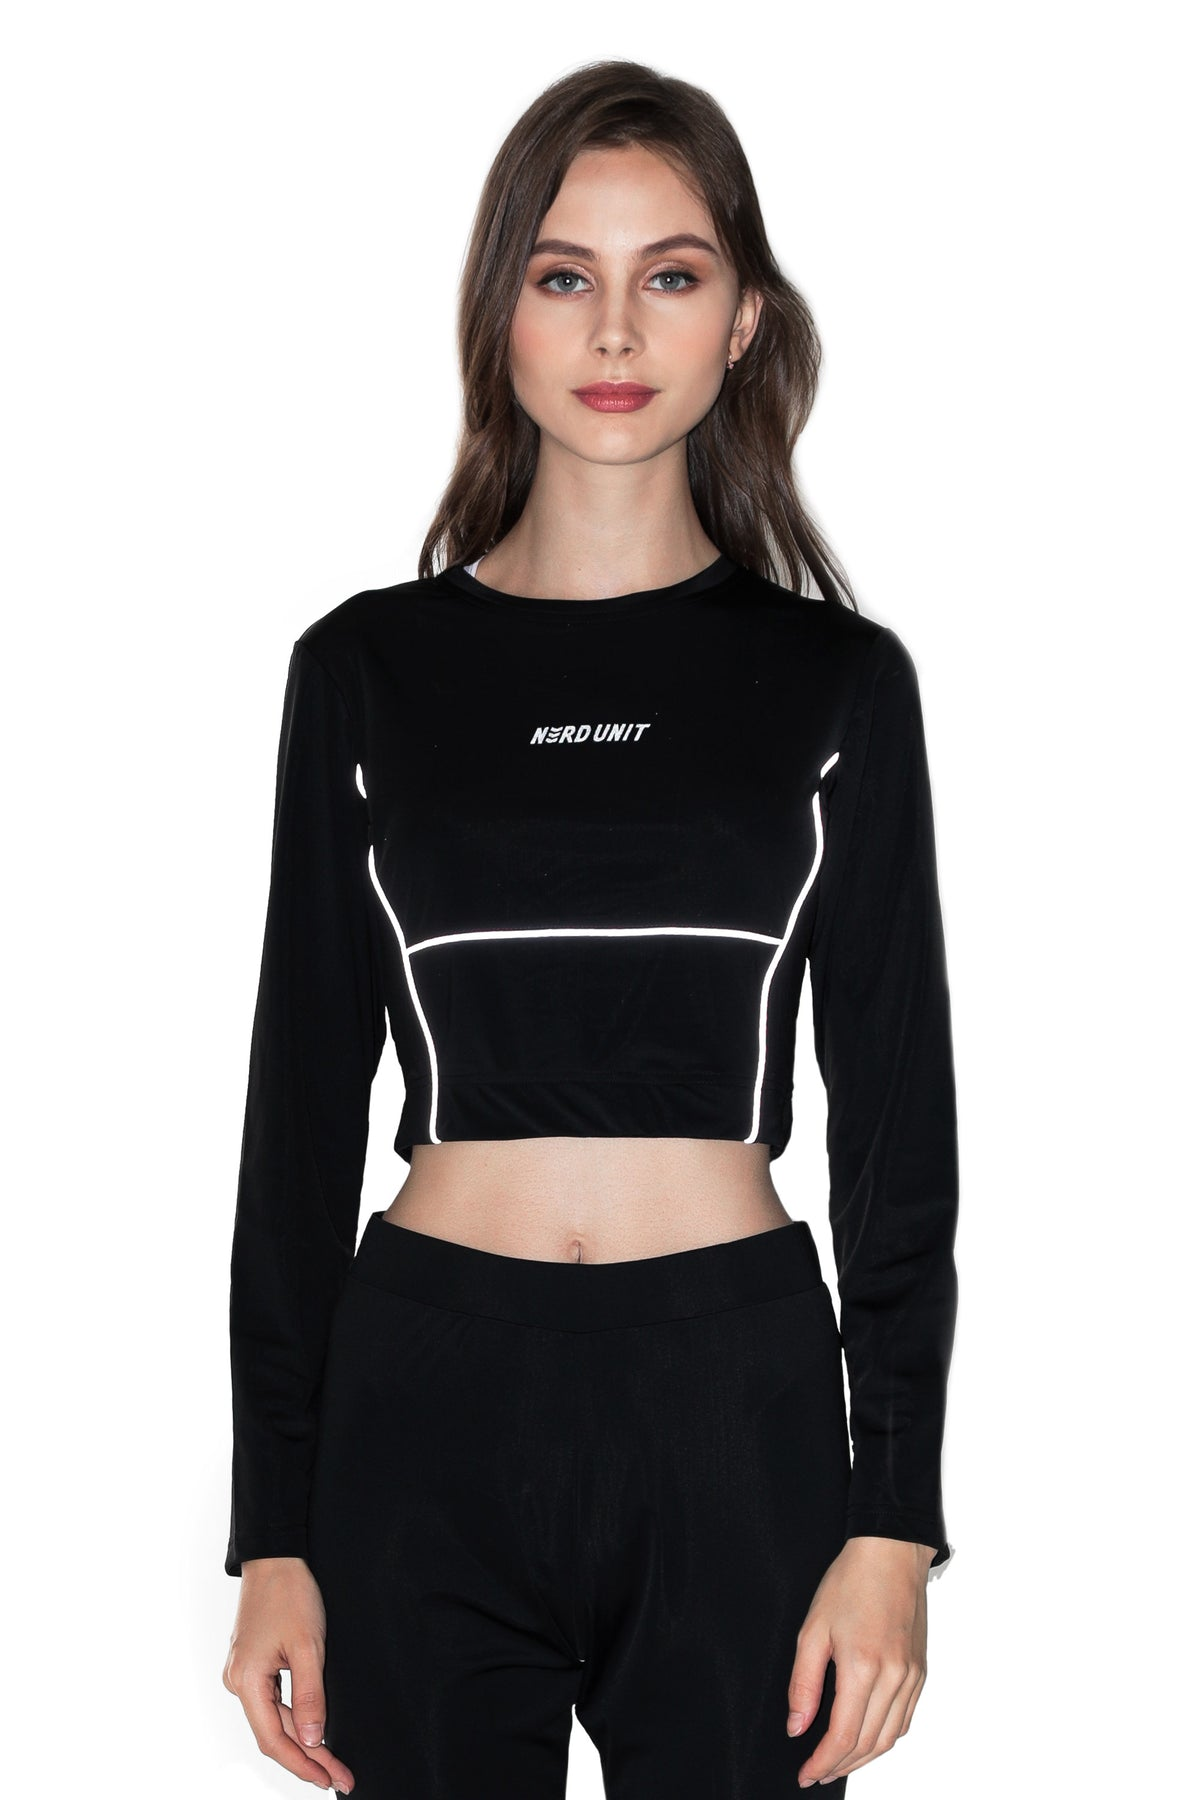 REFLECTIVE LINING LONG SLEEVES CROP TOP | BLACK ( リフレクティブ ライニング ロングスリーブ クロップトップ | ブラック )